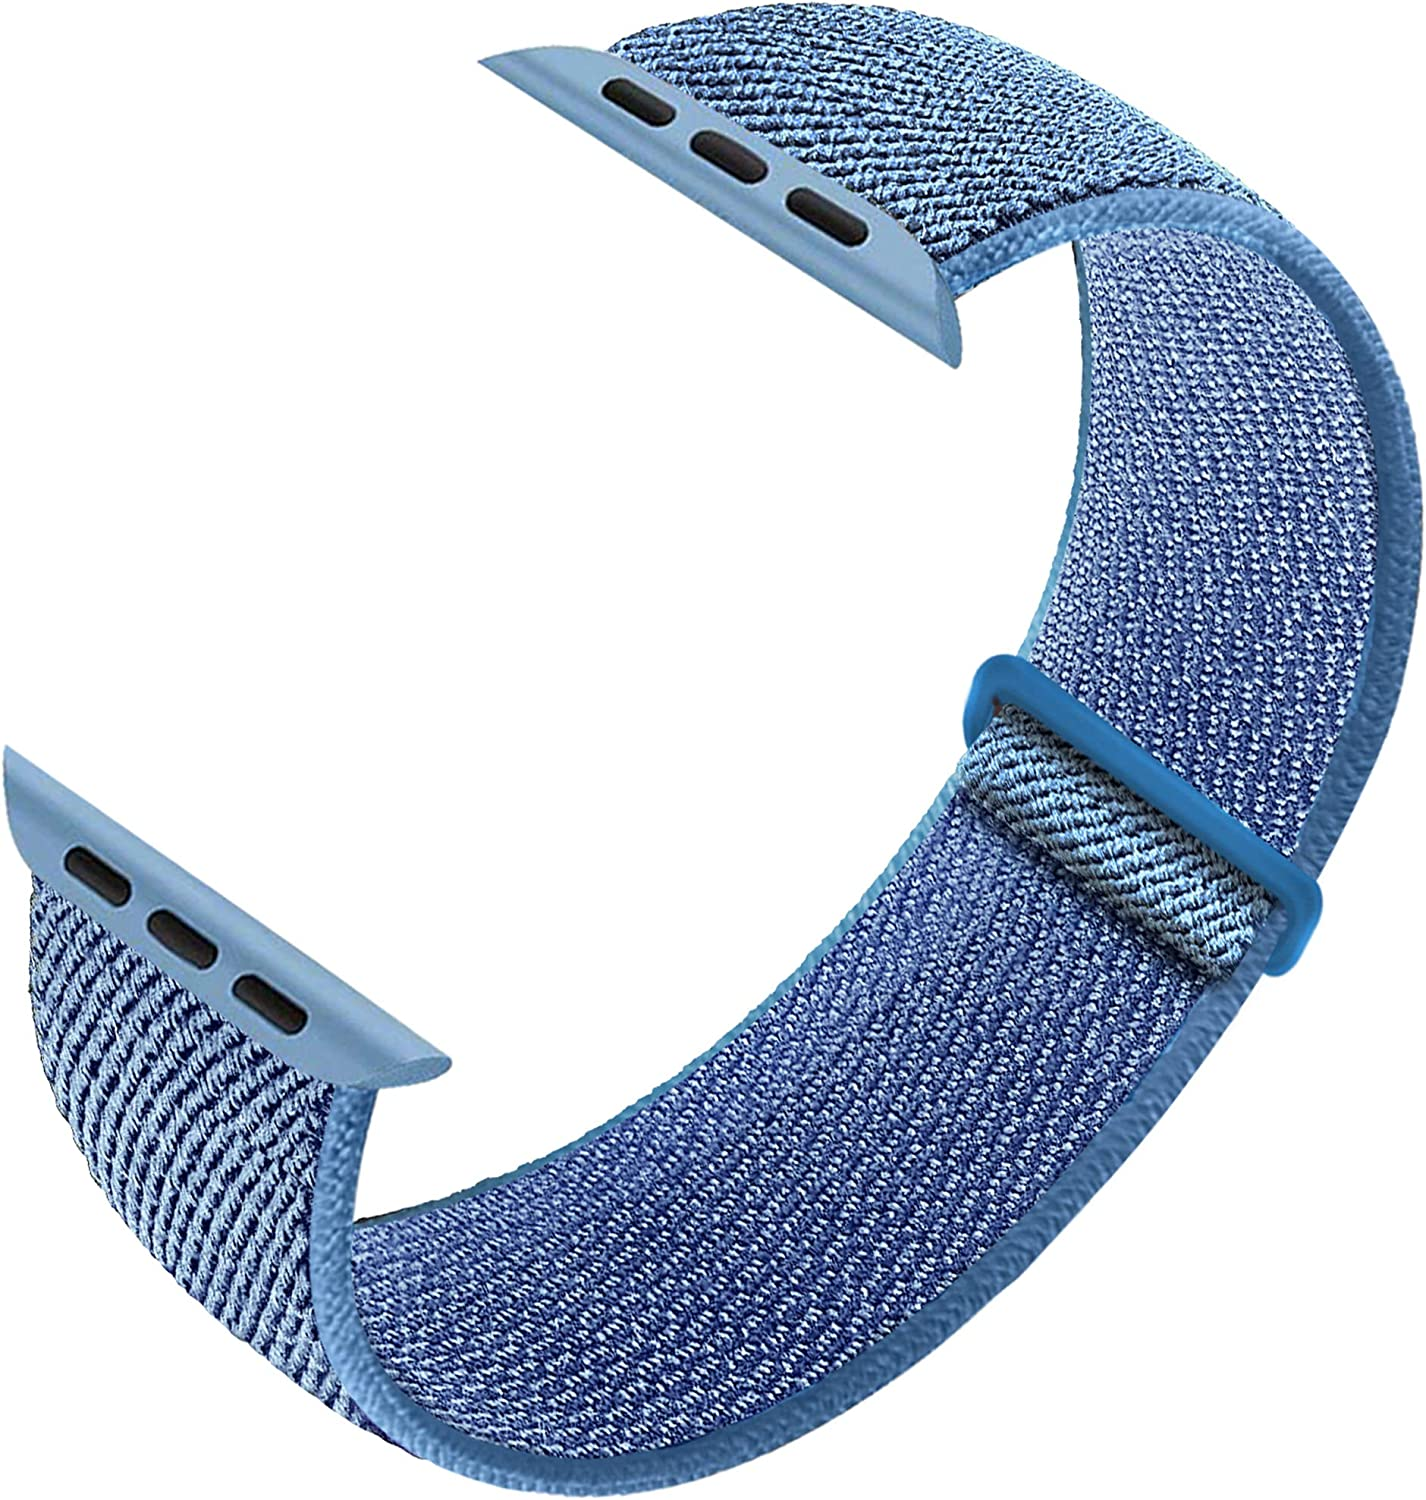 Ruiboo Sport Loop Band Compatible with Apple Watch Band 38mm 40mm 42mm 44mm iWatch Series 6 5 SE 4 3 2 1 Strap,Nylon Velcro Weave Women Men Replacement Wristband Stretchy Elastic Breathable Soft Light